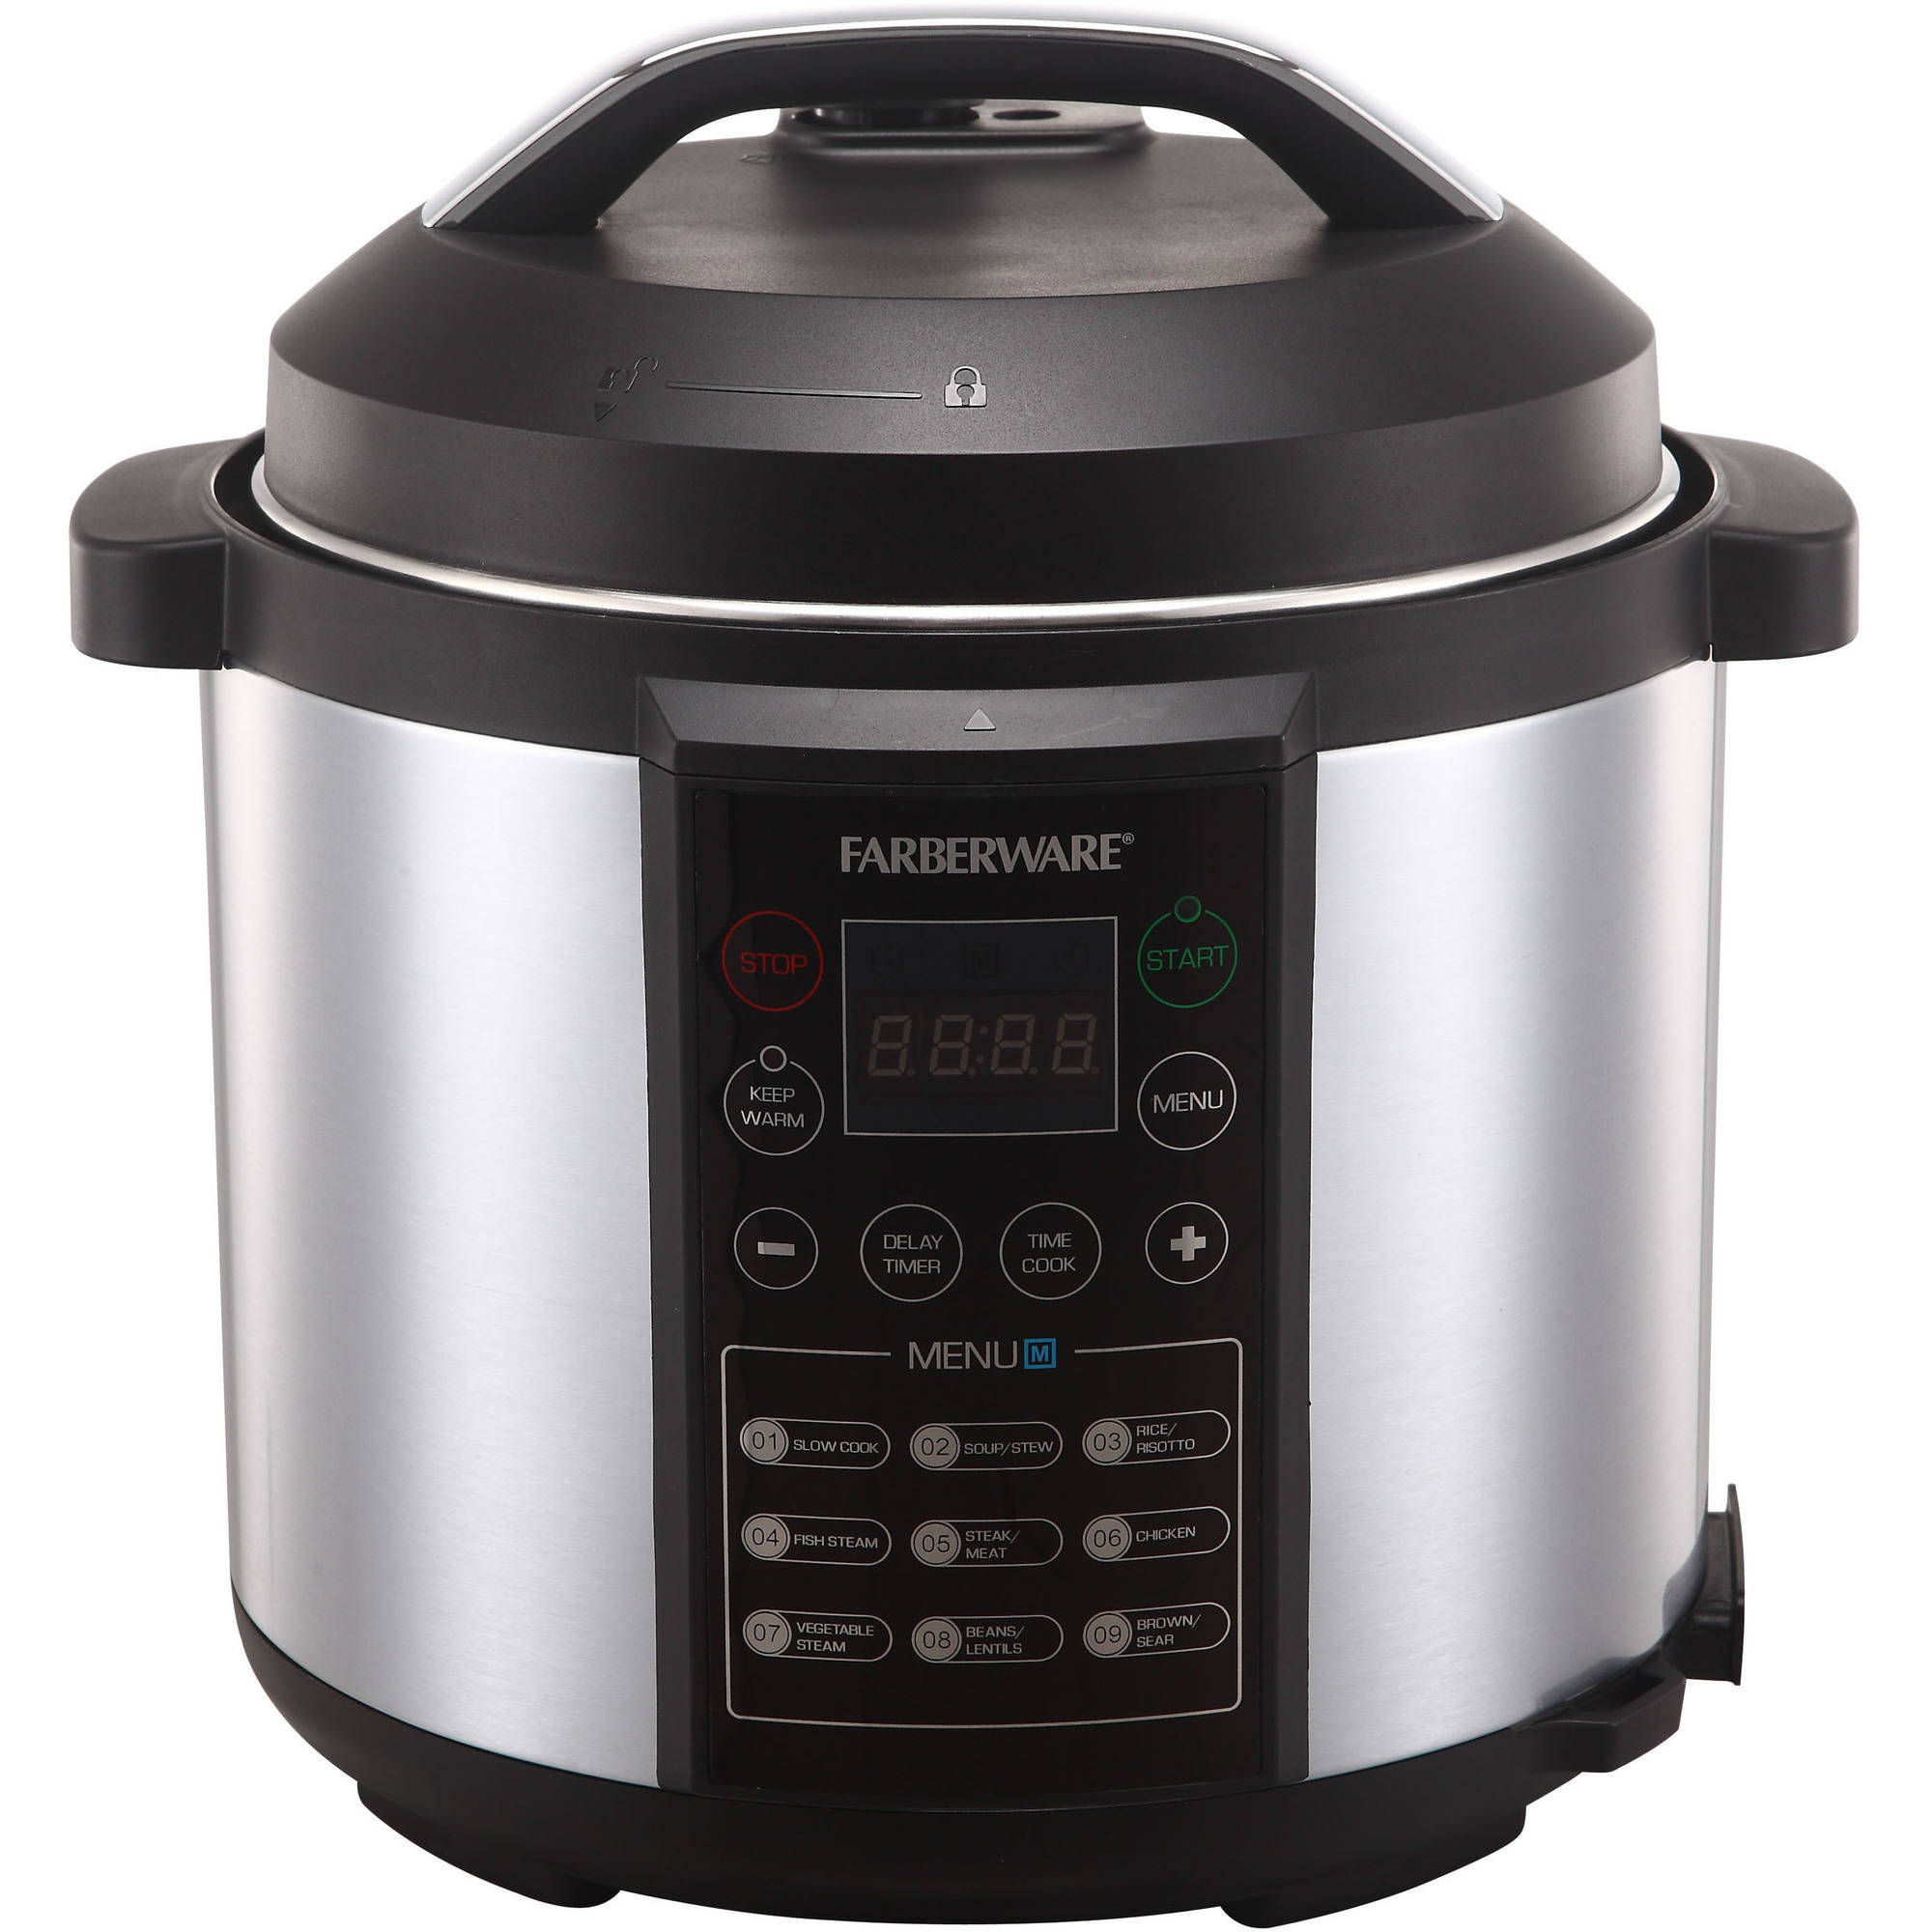 Farberware 6-Qt Digital Pressure Cooker